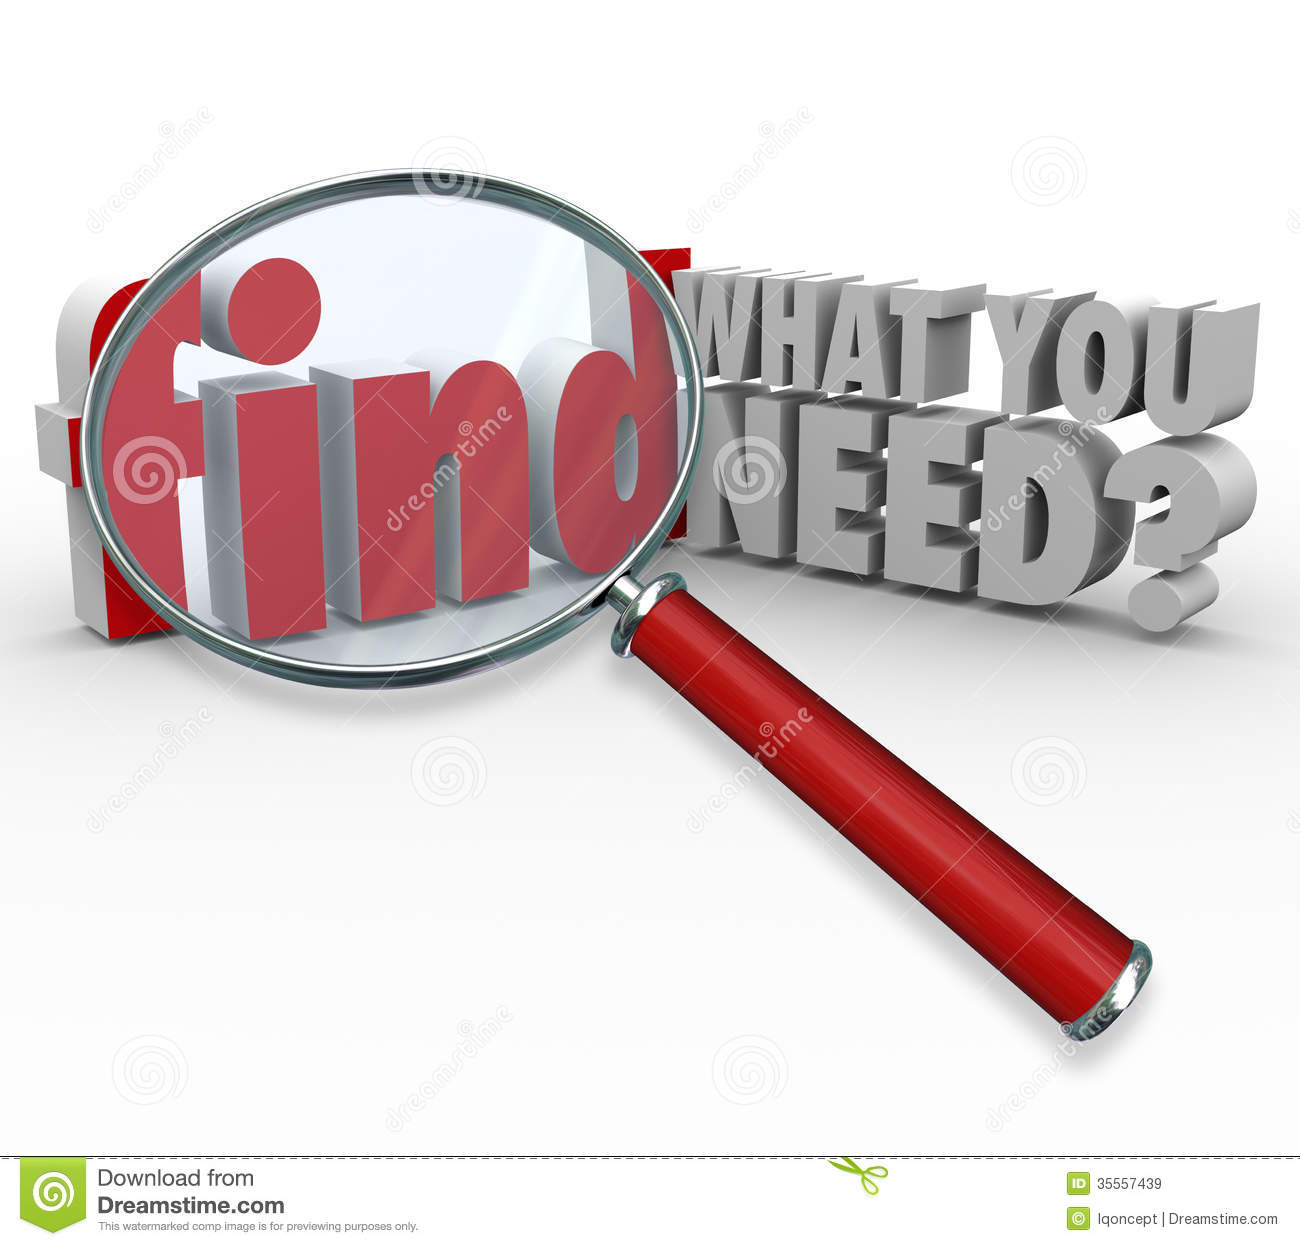 Find: Find What You Need Magnifying Glass Searching For